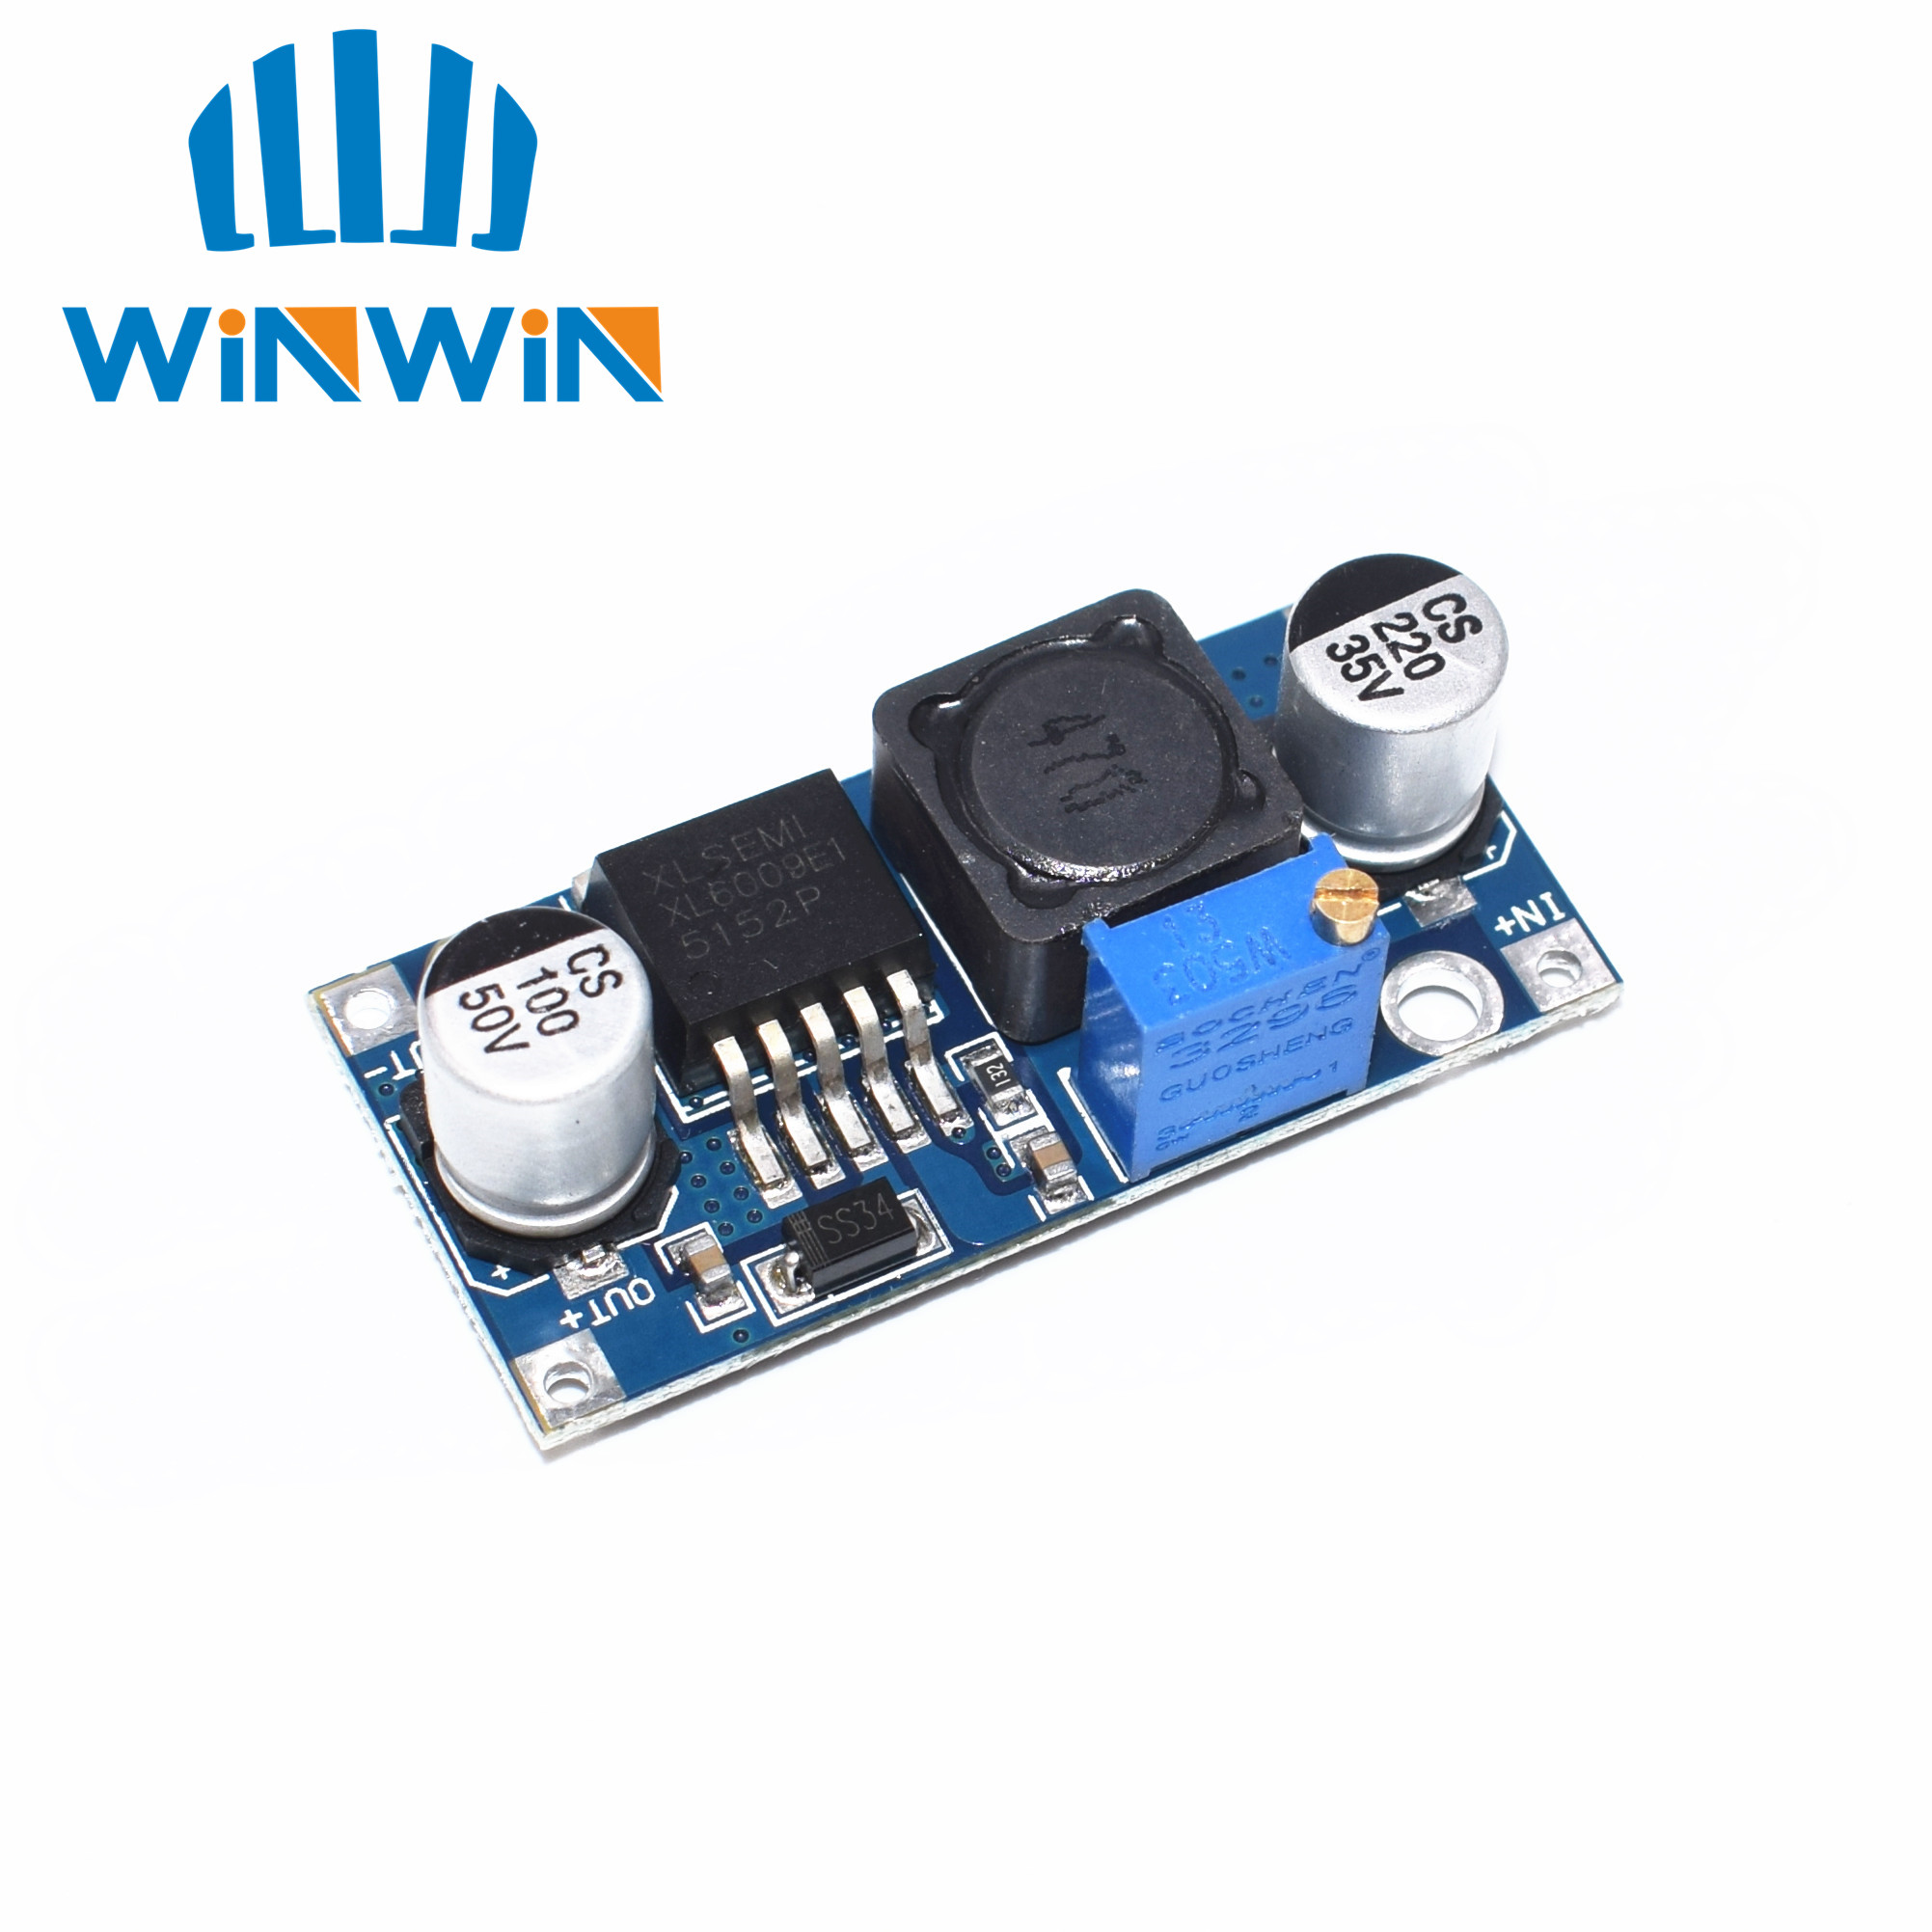 Enthusiastic 50pcs/lot Dc-dc Module Power Supply Module Xl6009 Can Raise Pressure Booster Module Super Lm2577 Dc-dc Booster Step-up Module Save 50-70% Back To Search Resultselectronic Components & Supplies